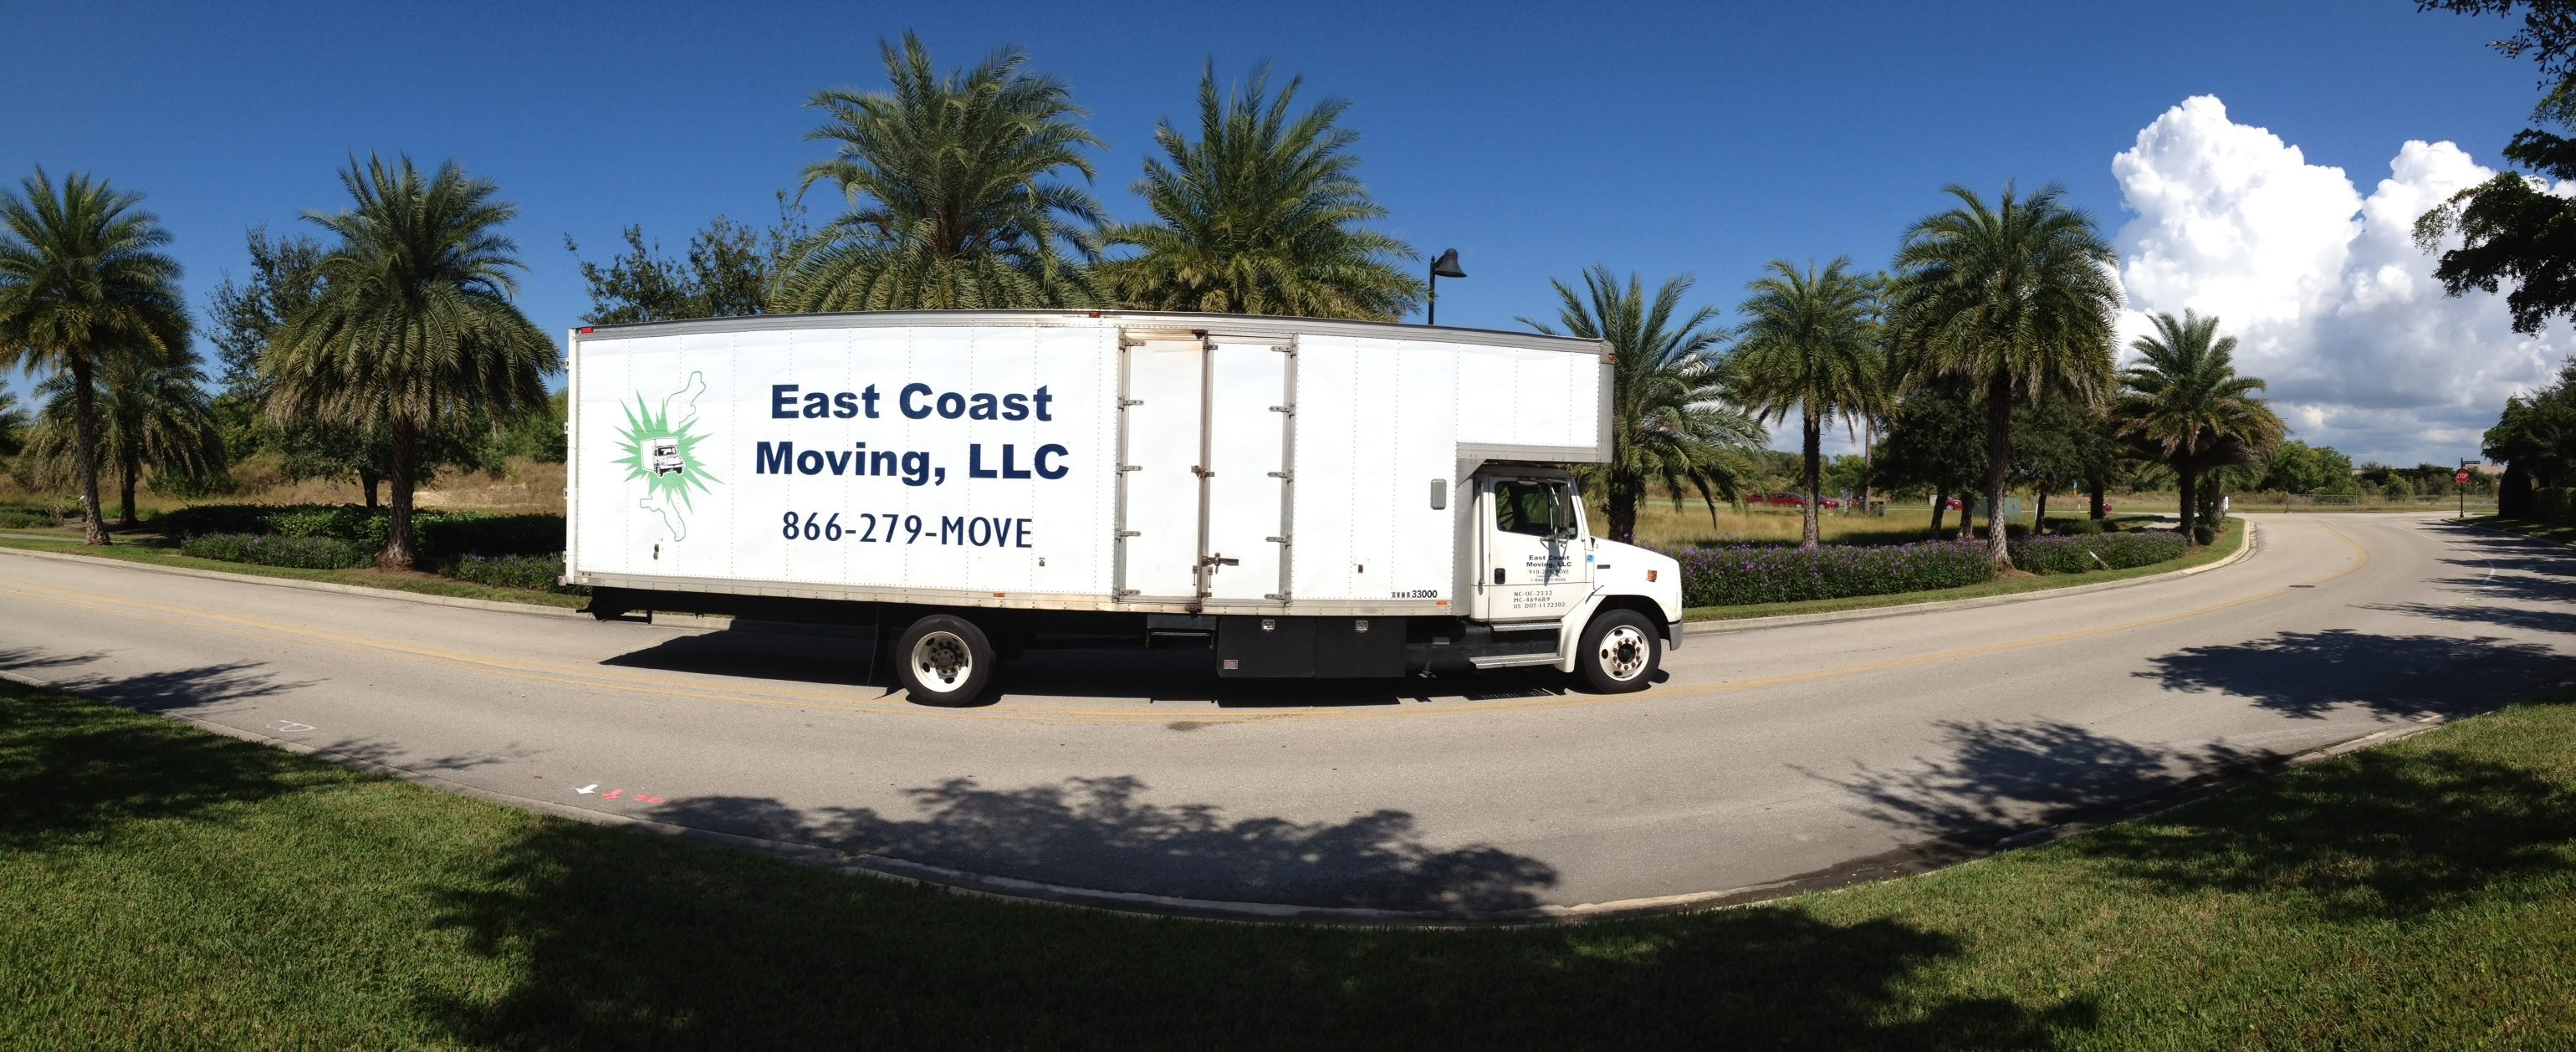 Shallotte Nc 28470 East Coast Moving Image